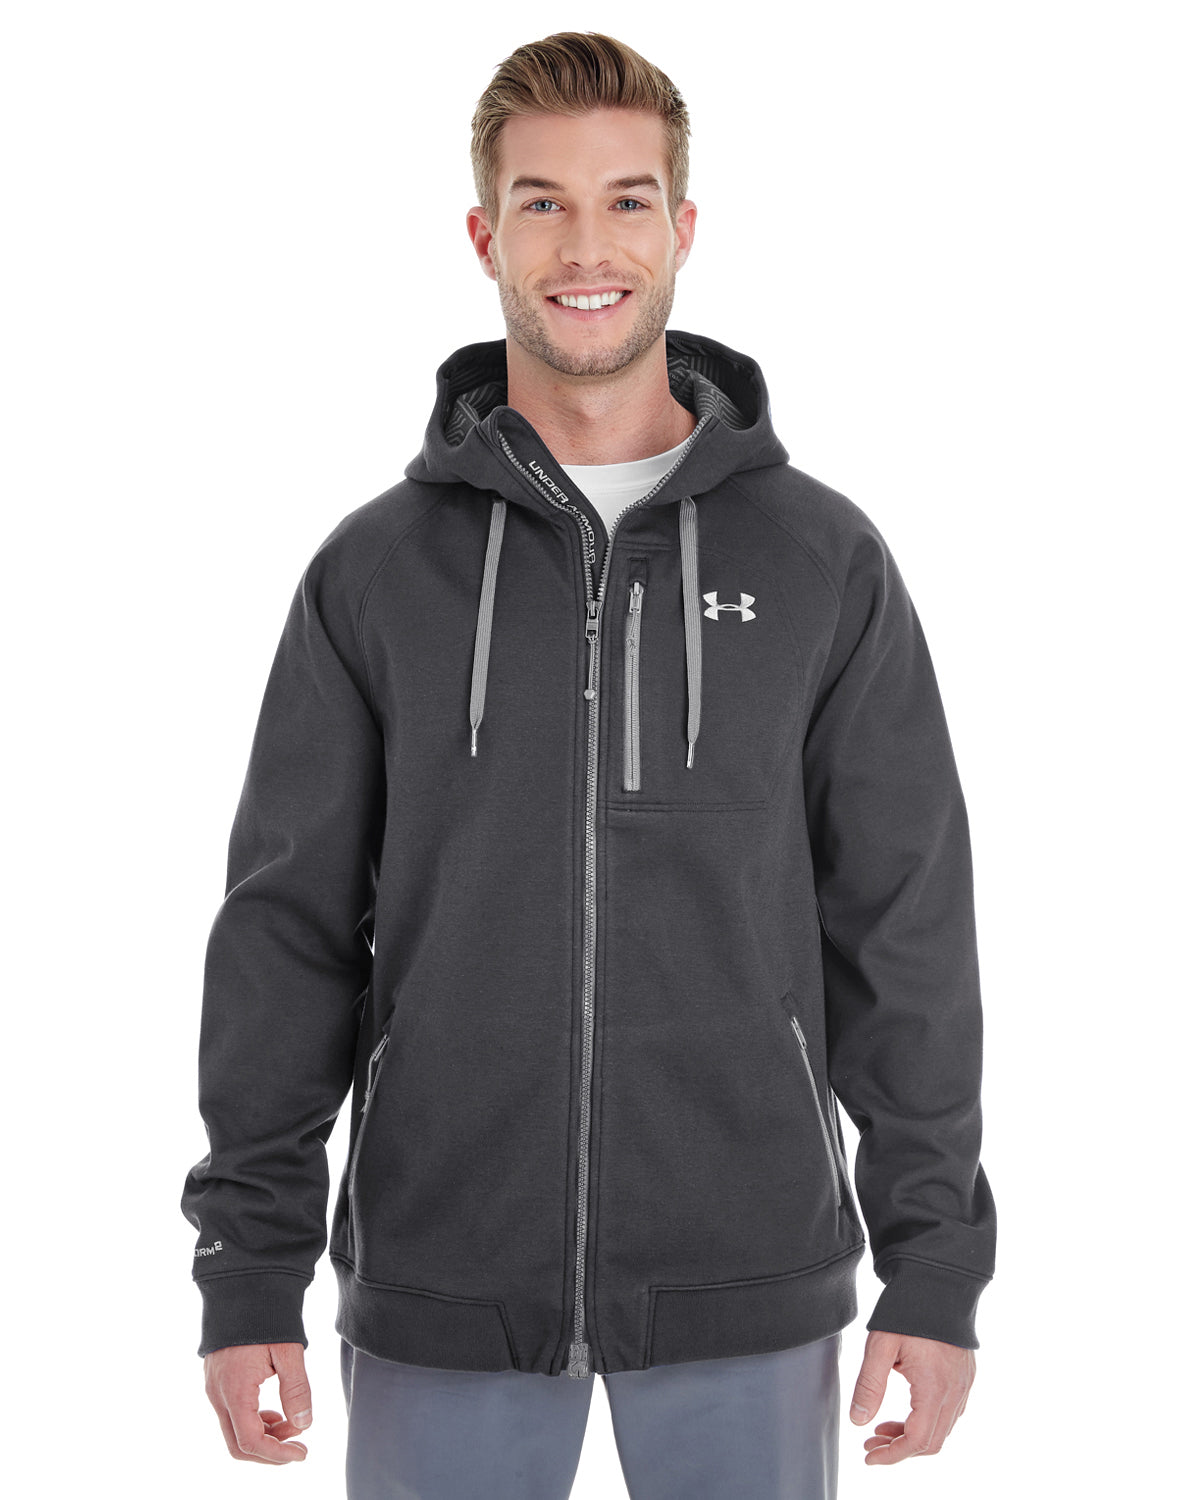 UNDER ARMOUR MEN'S UA COLDGEAR INFRARED SOFTSHELL JACKET